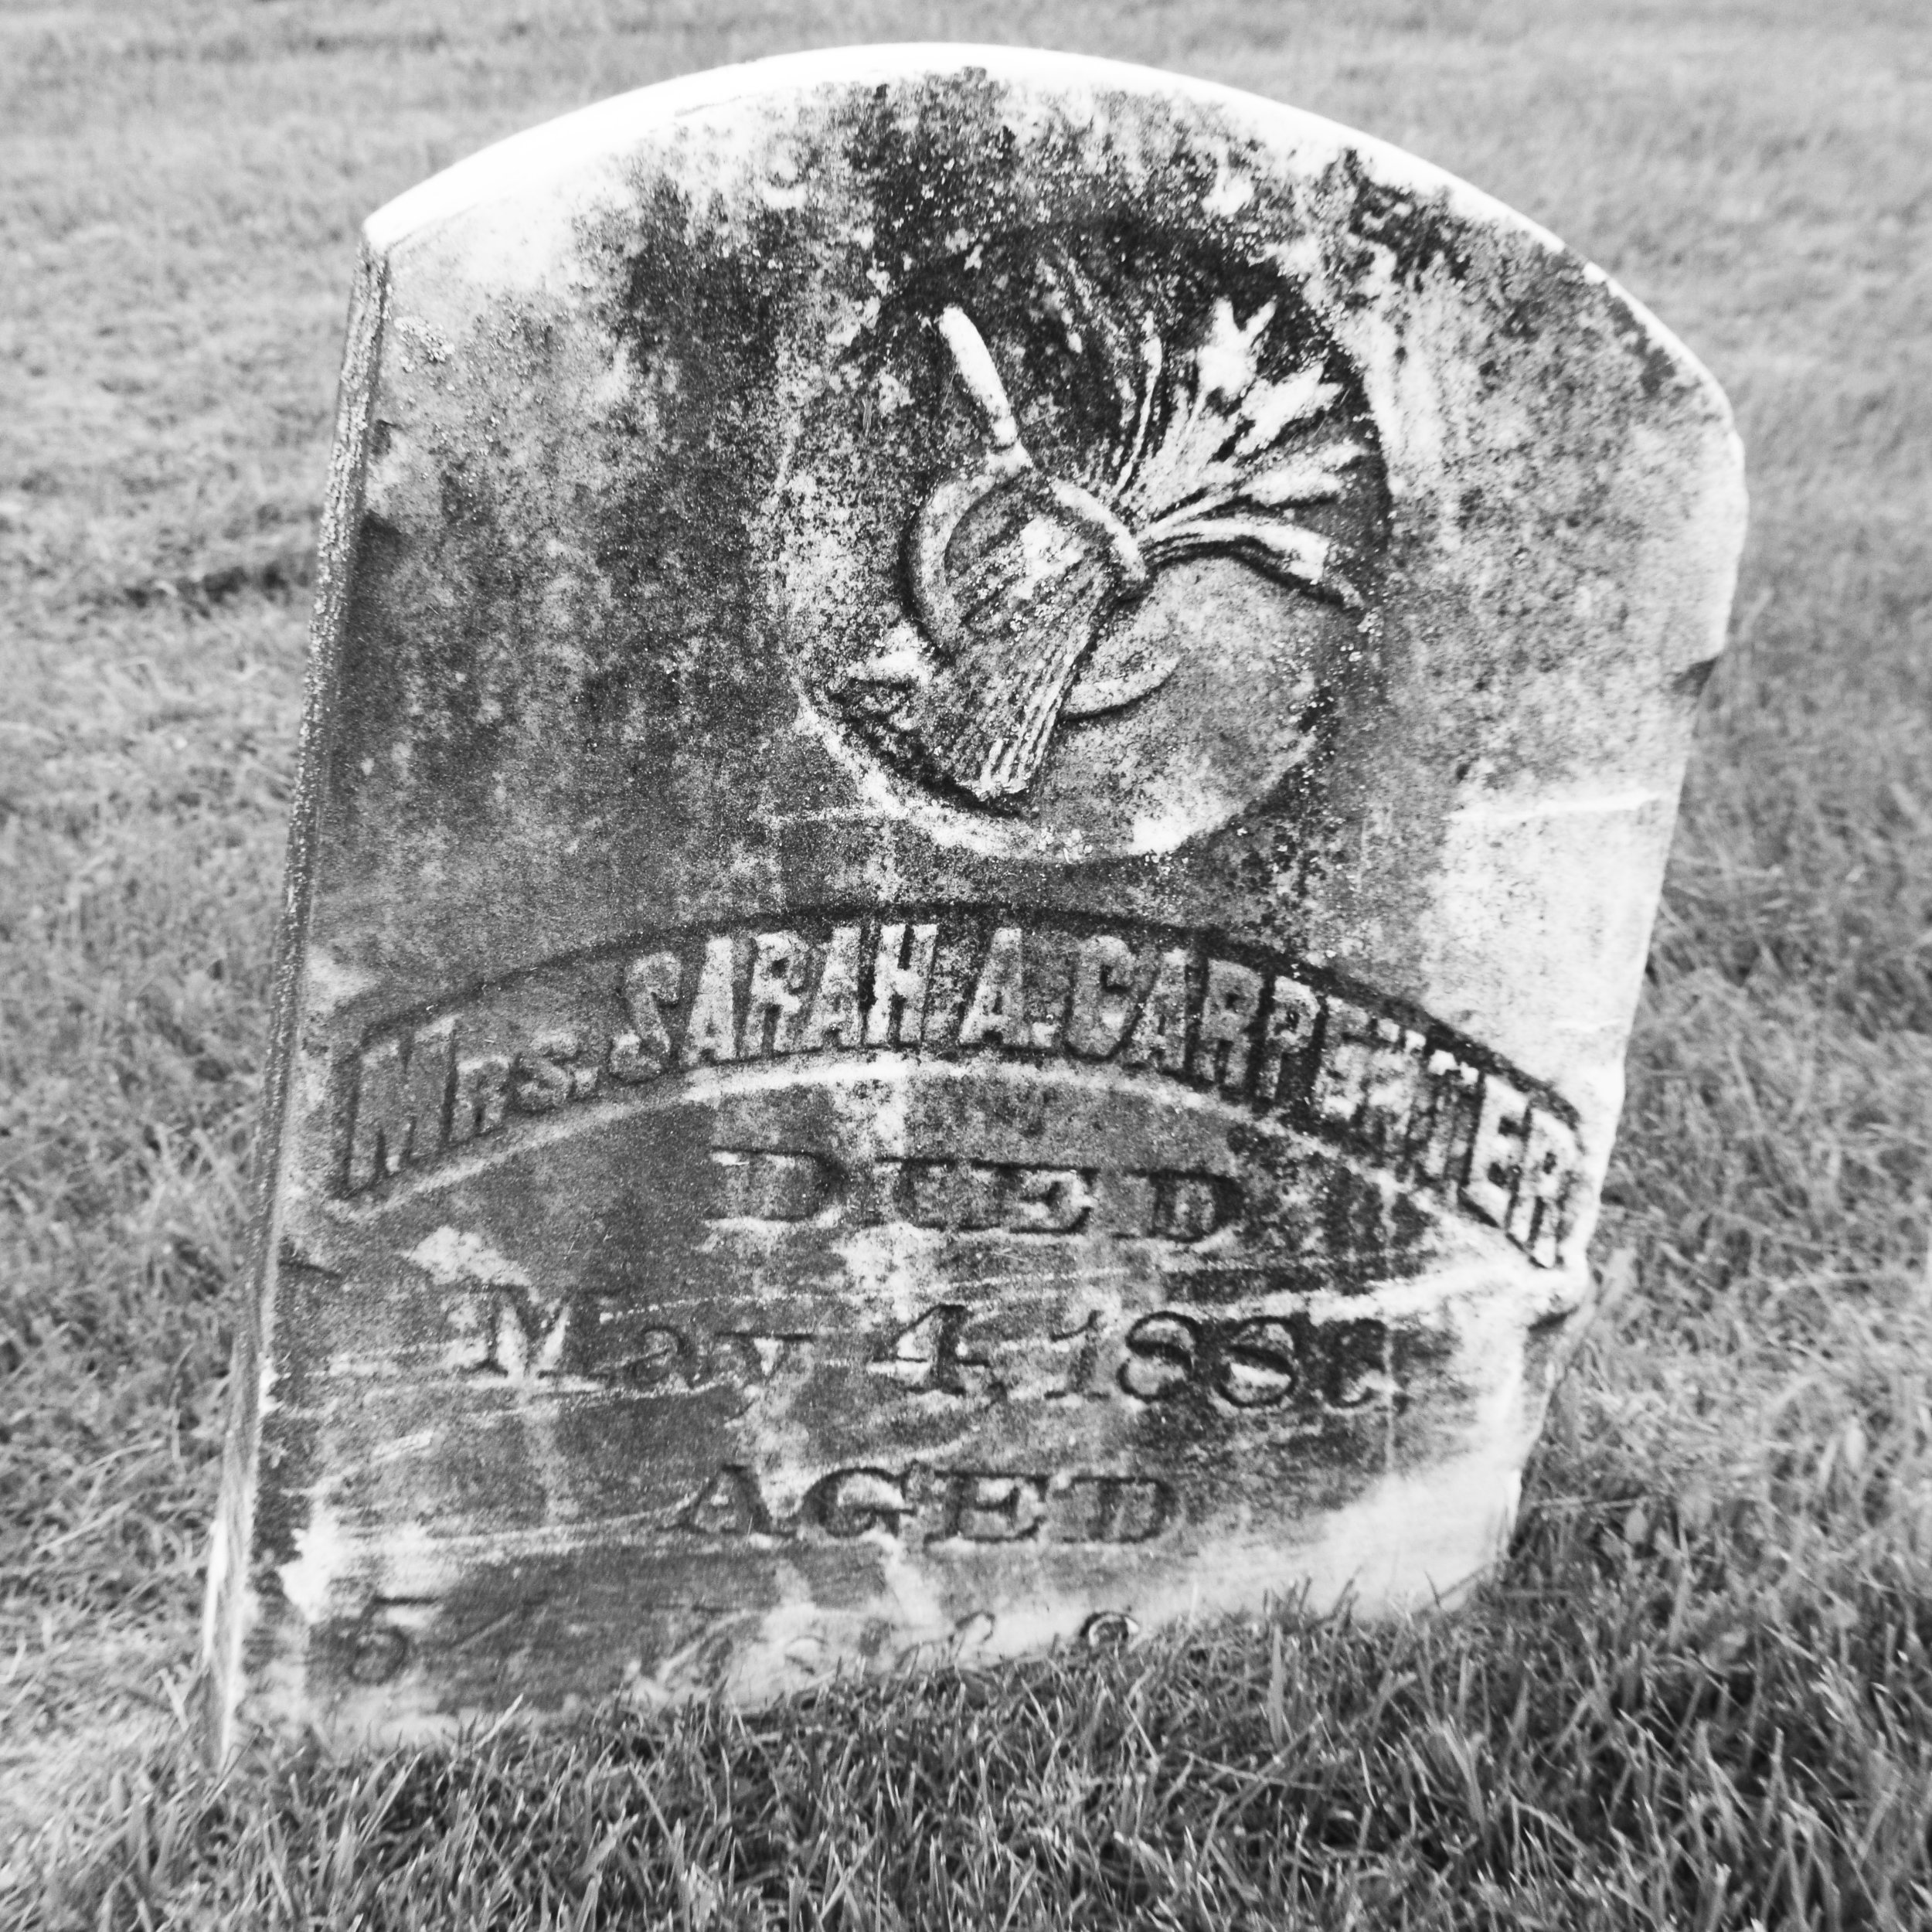 Mrs. Sarah A. Carpenter. Died May 4, 1888, aged 54. Coopersville-Polkton Cemetery, Michigan.